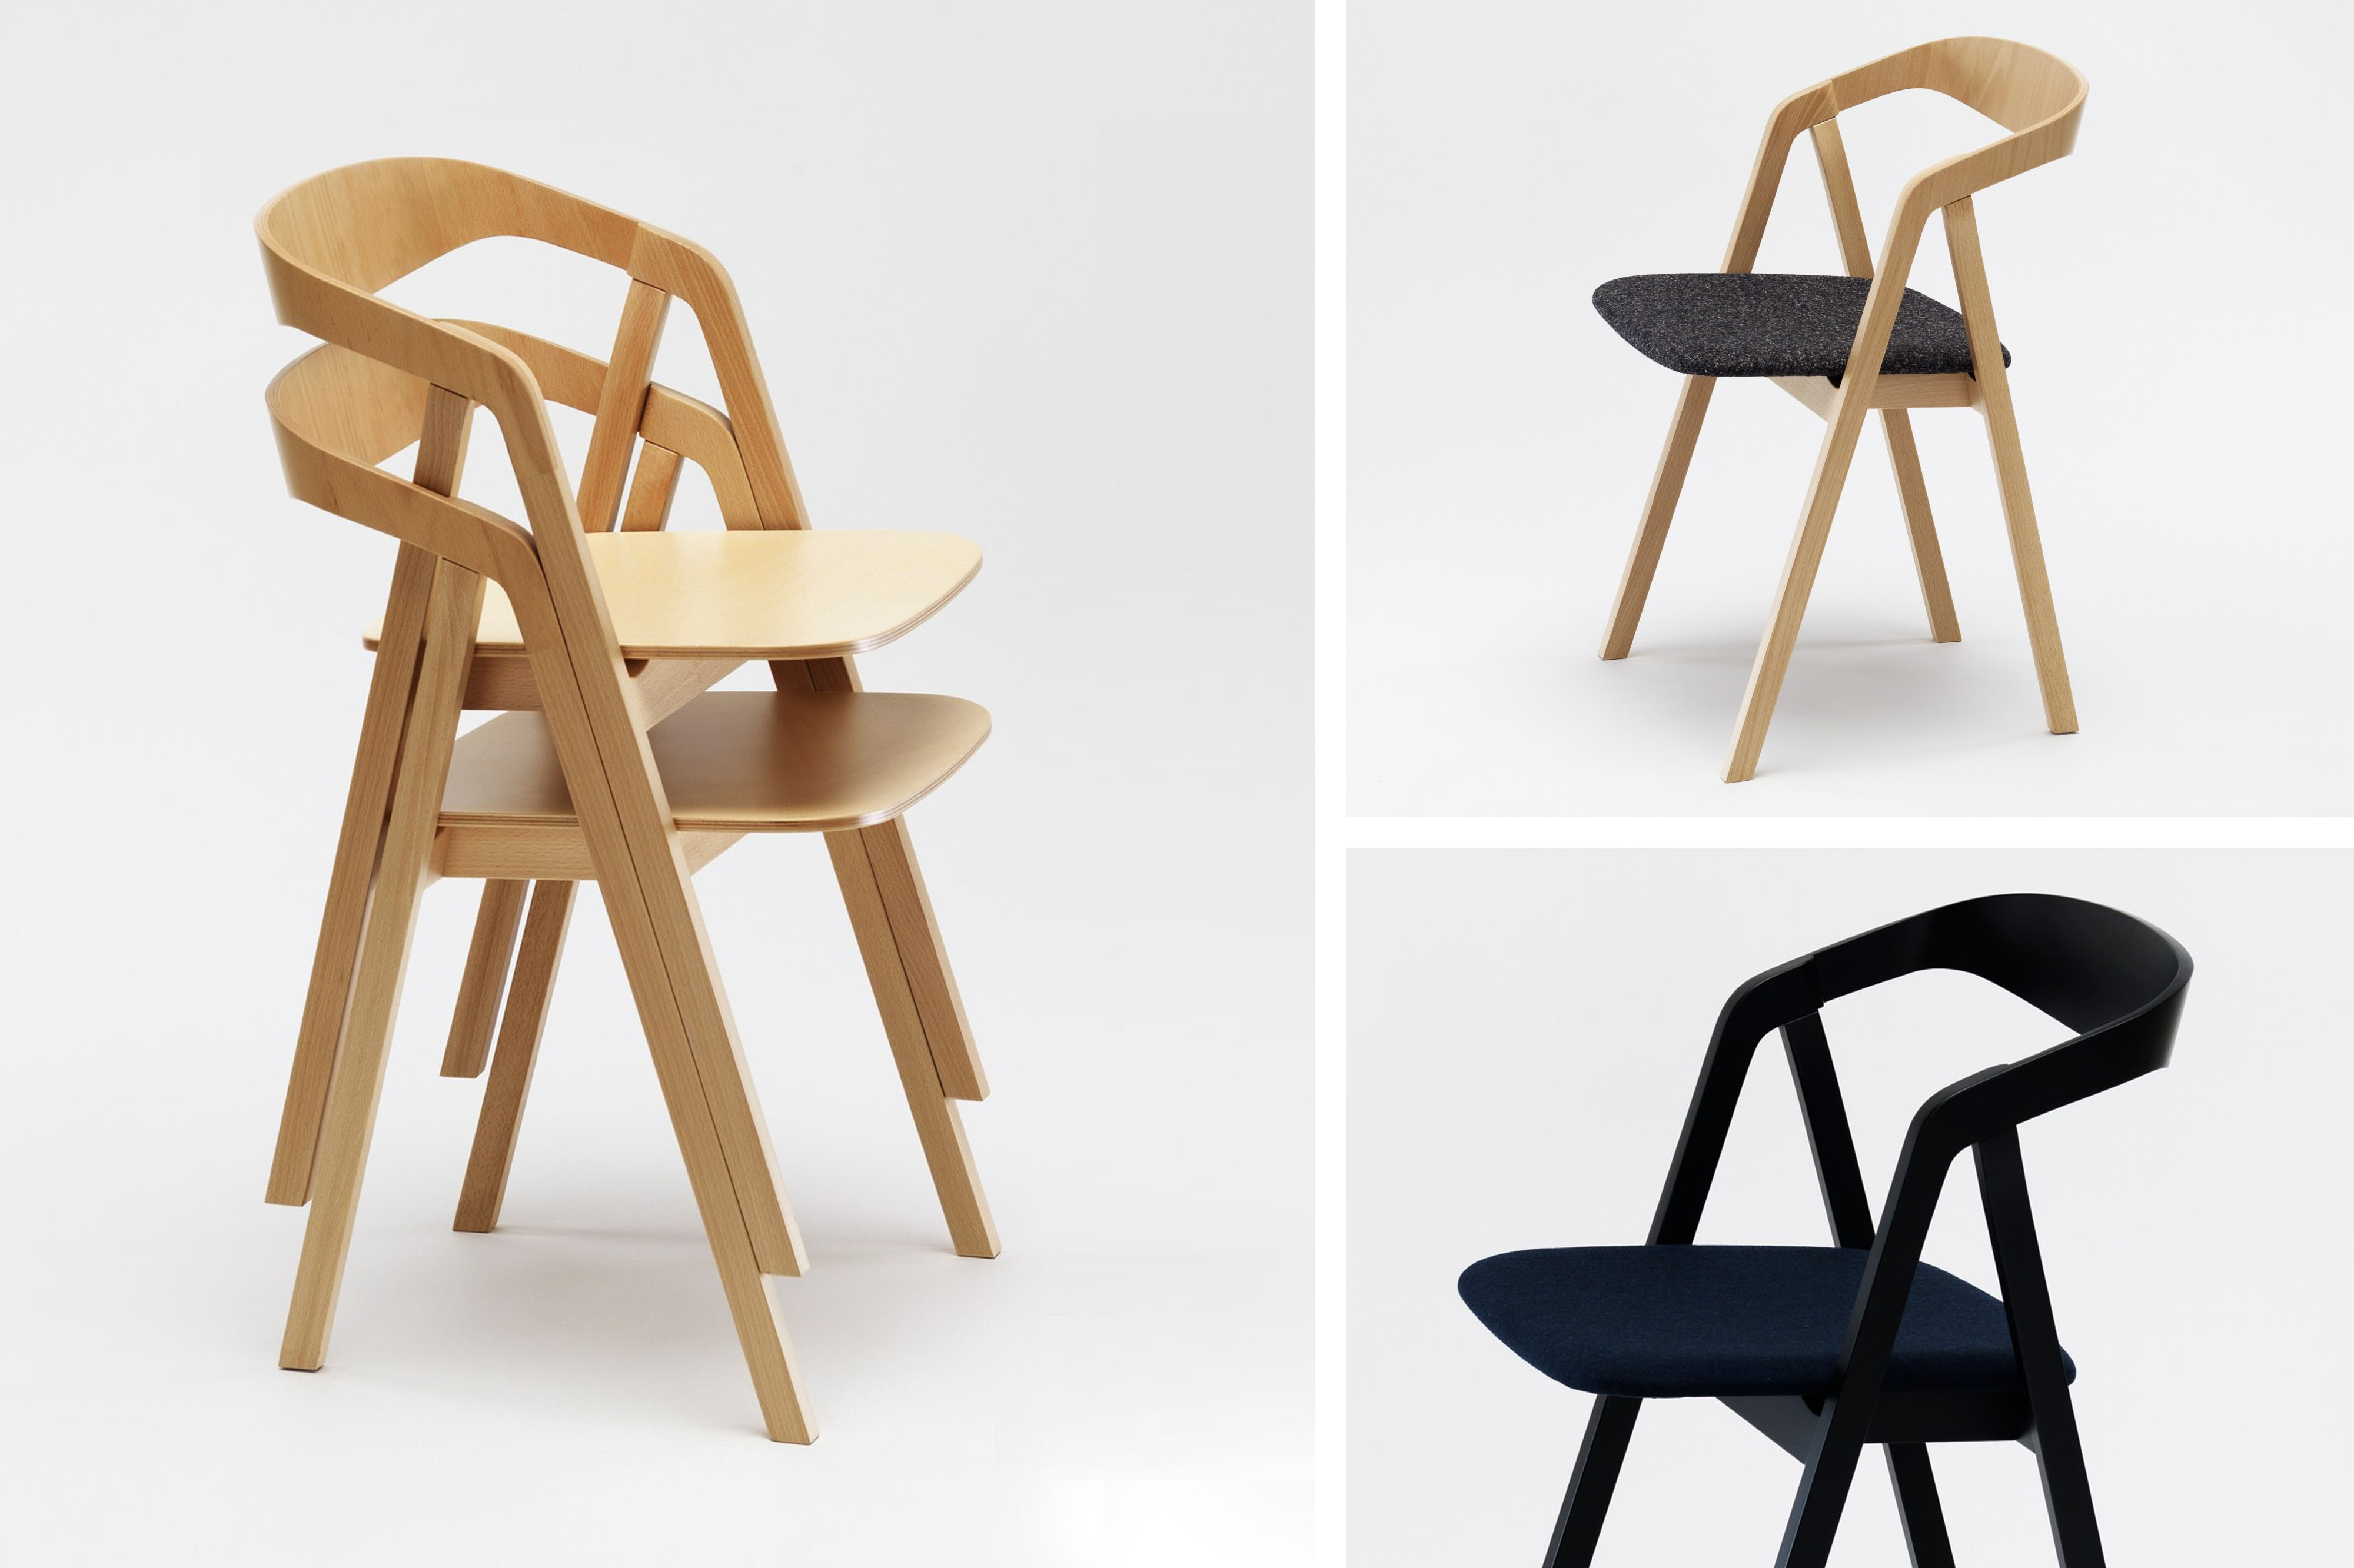 zilio-sta-chair-2